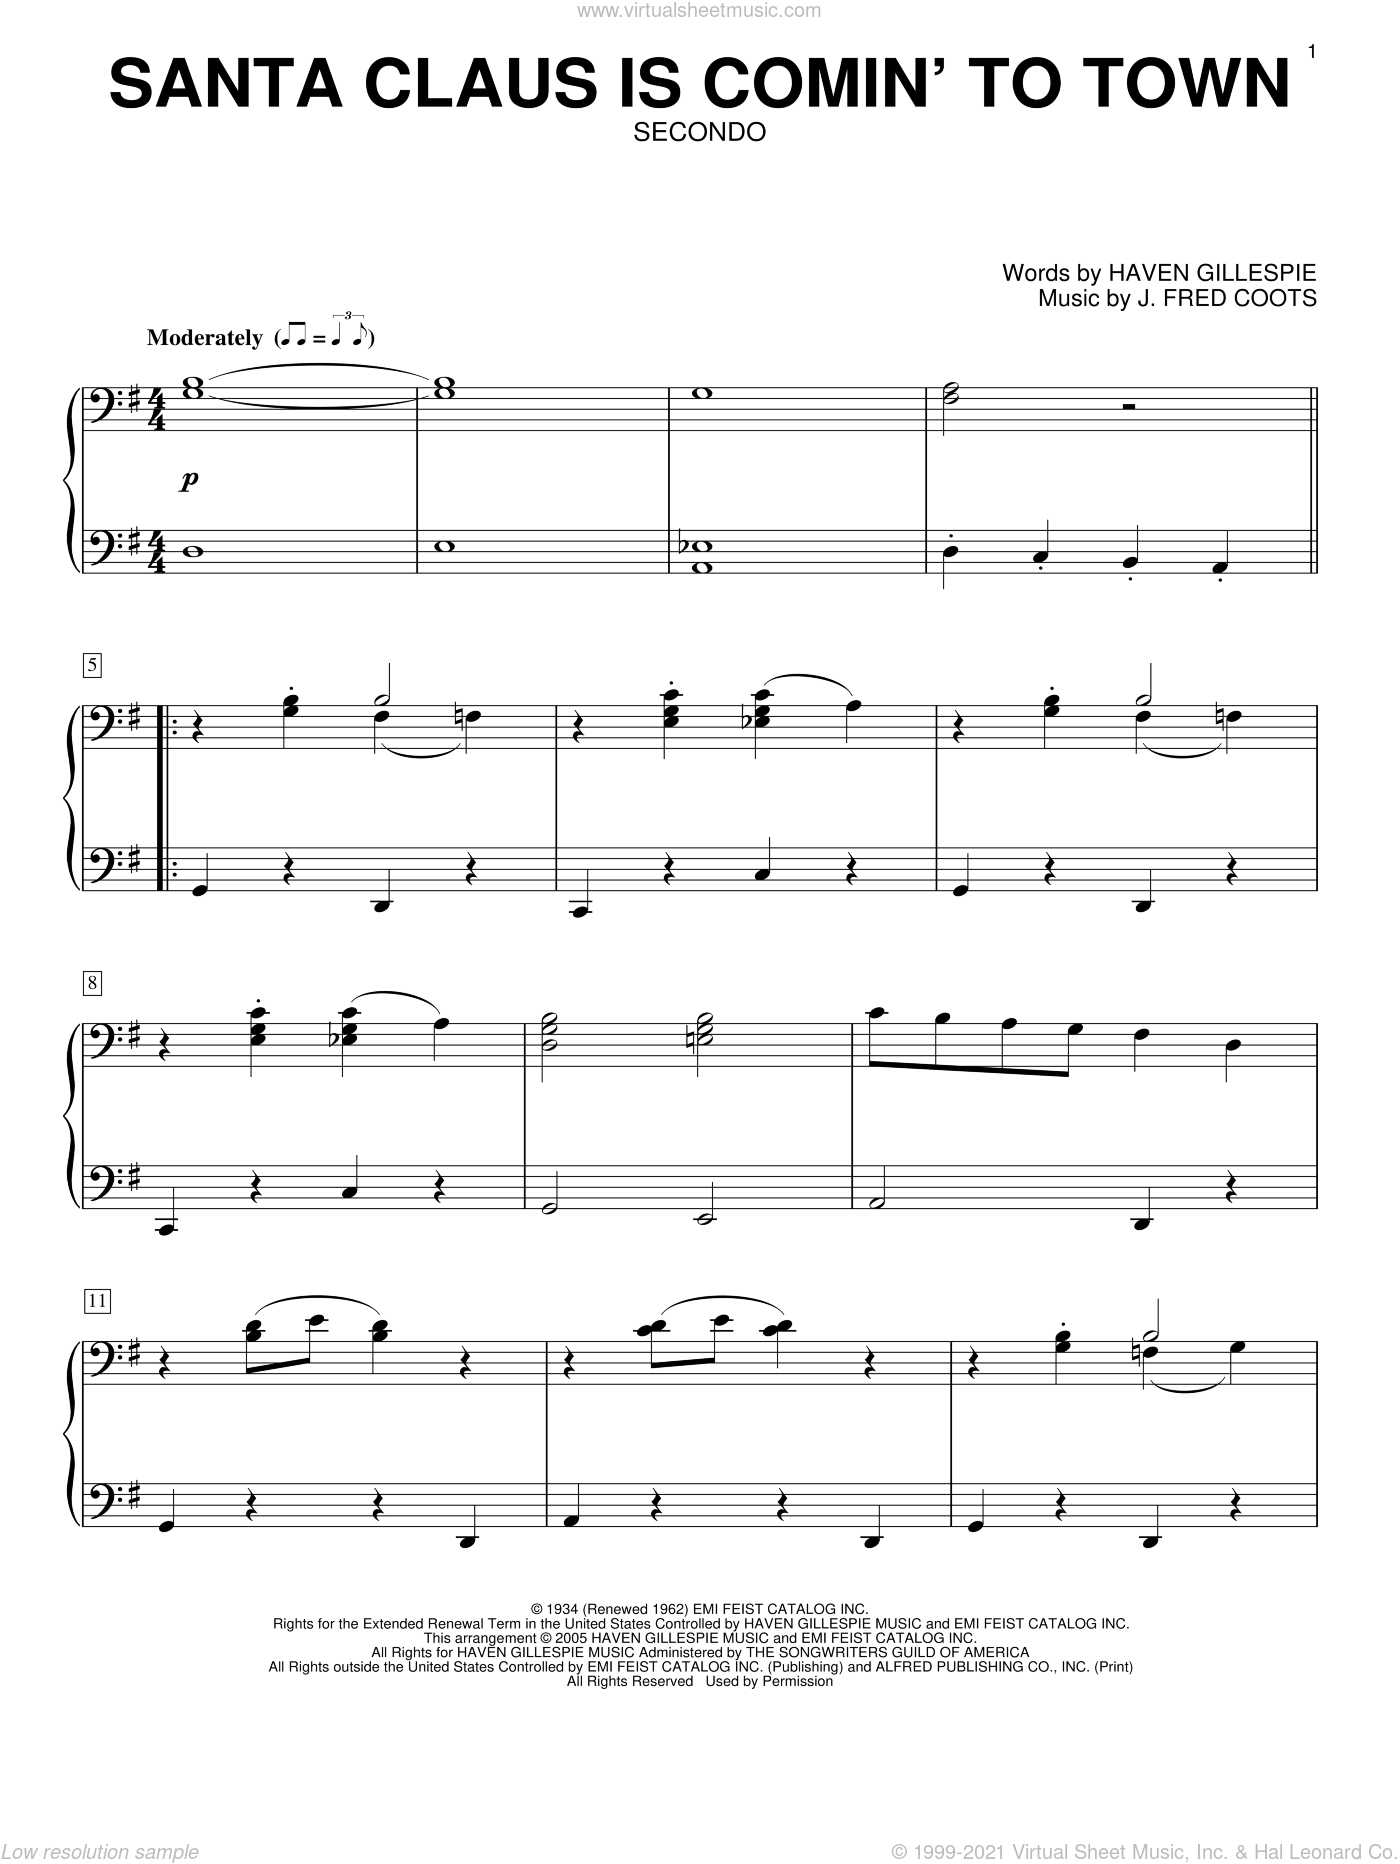 Santa Claus Is Comin' To Town sheet music for piano four hands (duets) by J. Fred Coots and Haven Gillespie. Score Image Preview.